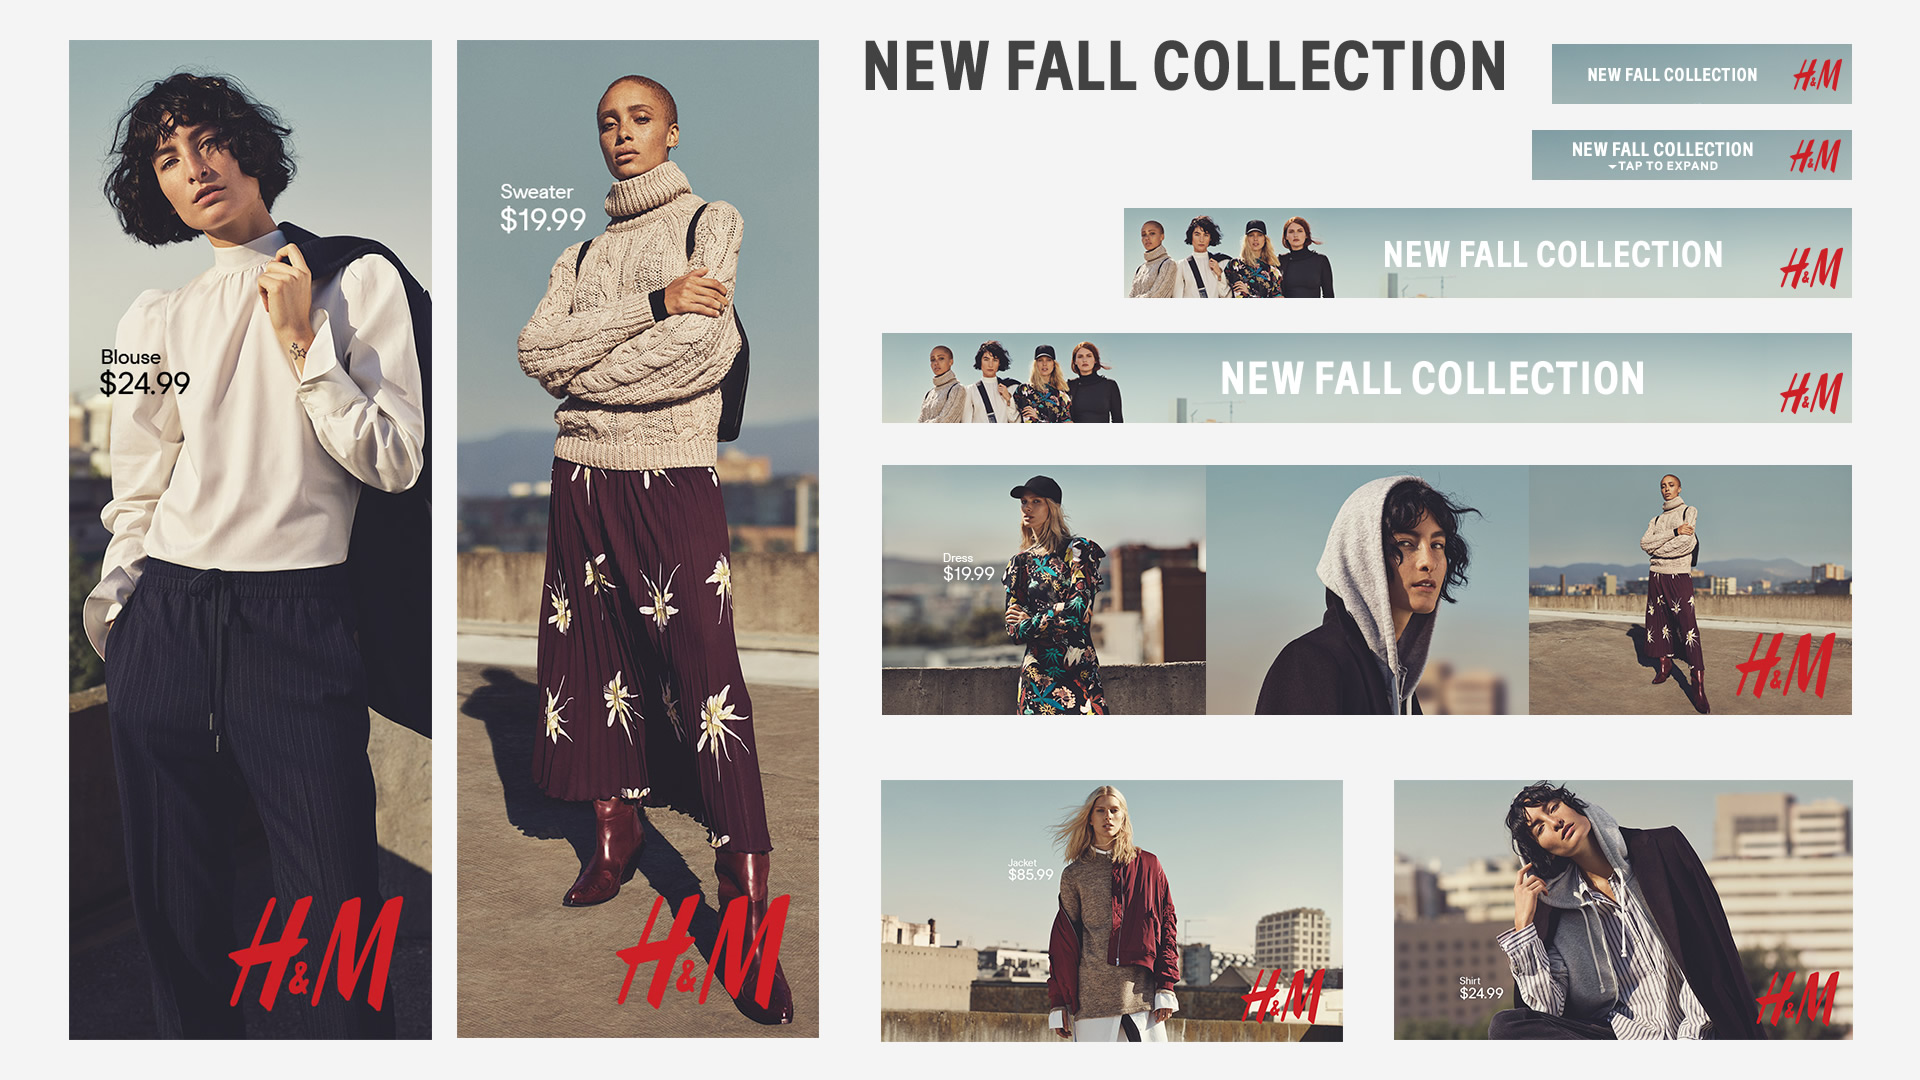 Fall Fashion 2016 digital campaign for H&M